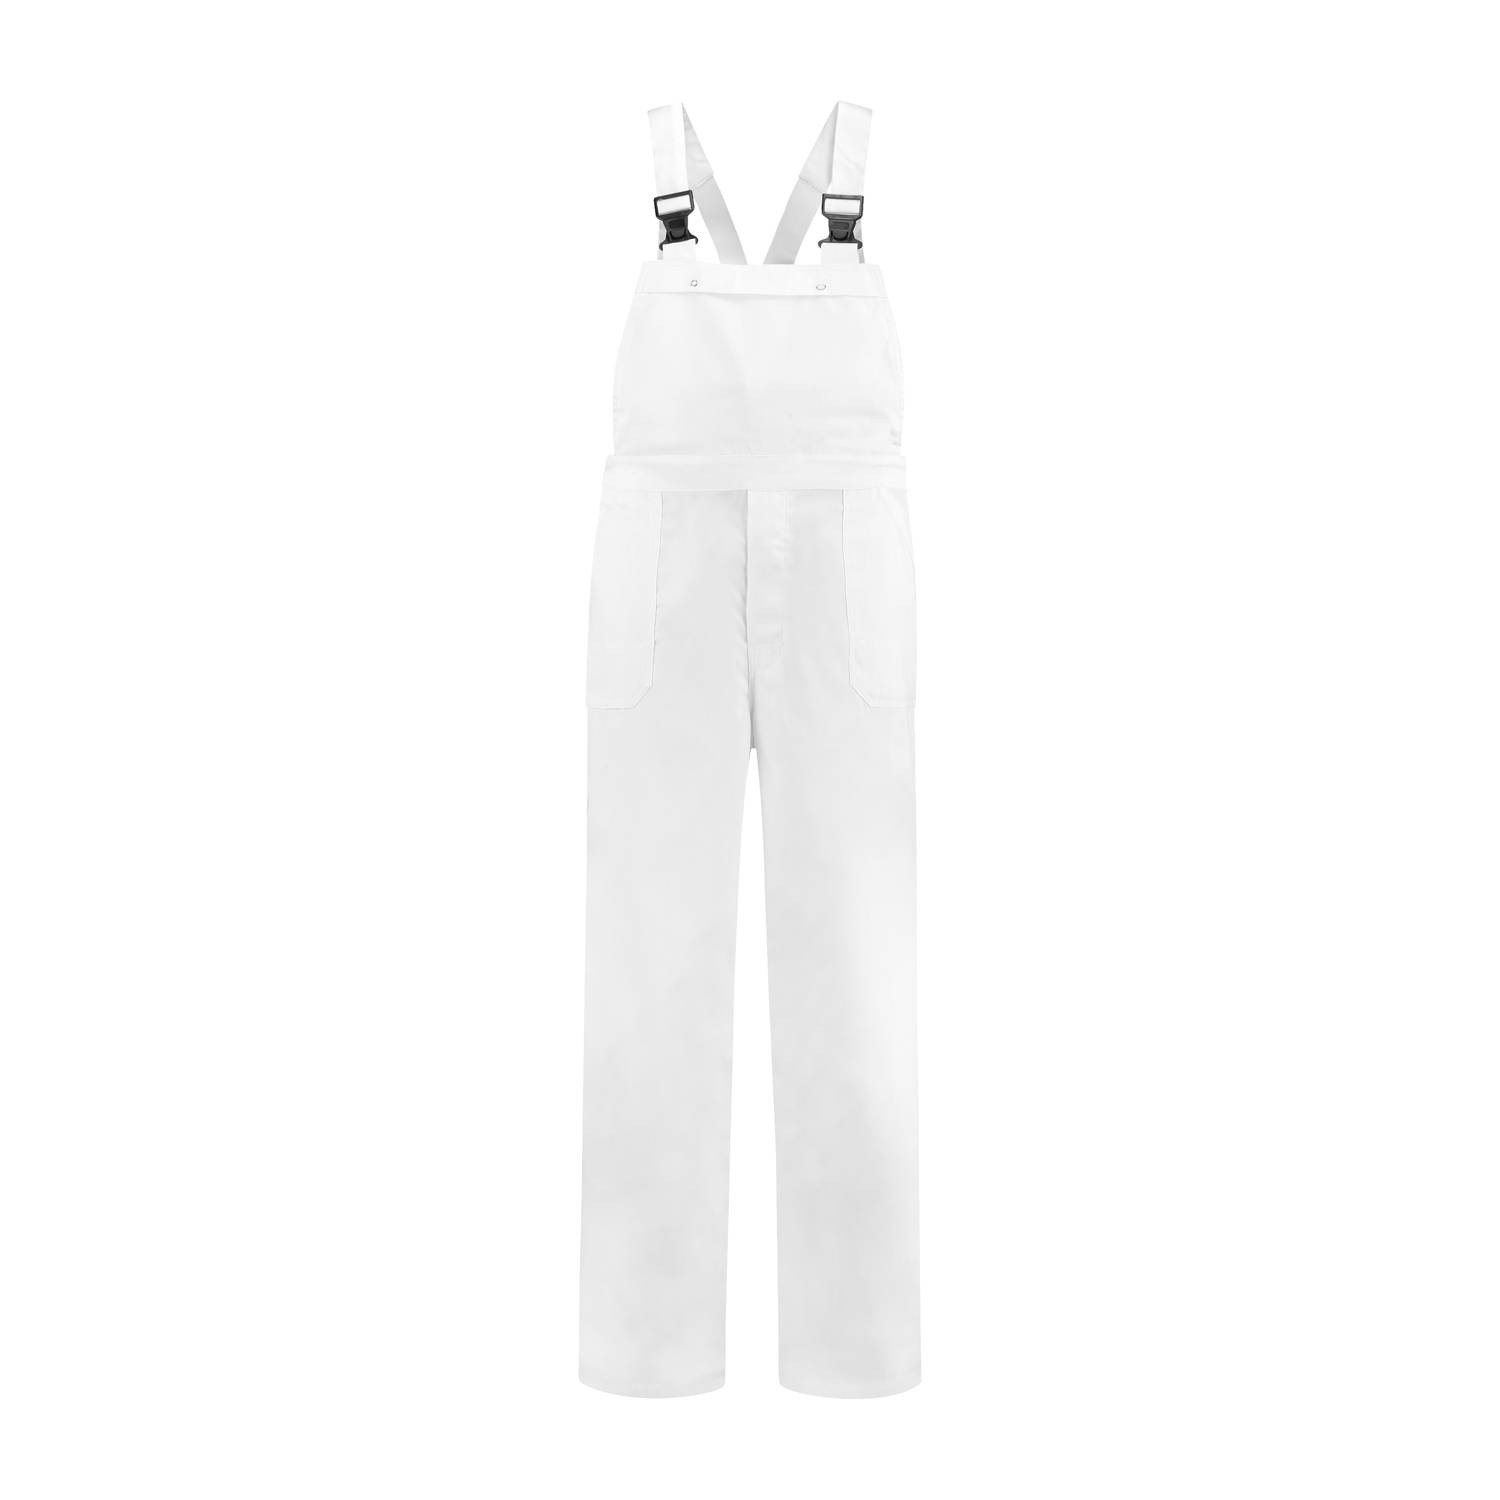 Noname Am. Overalls AMK100 wit(WIT)